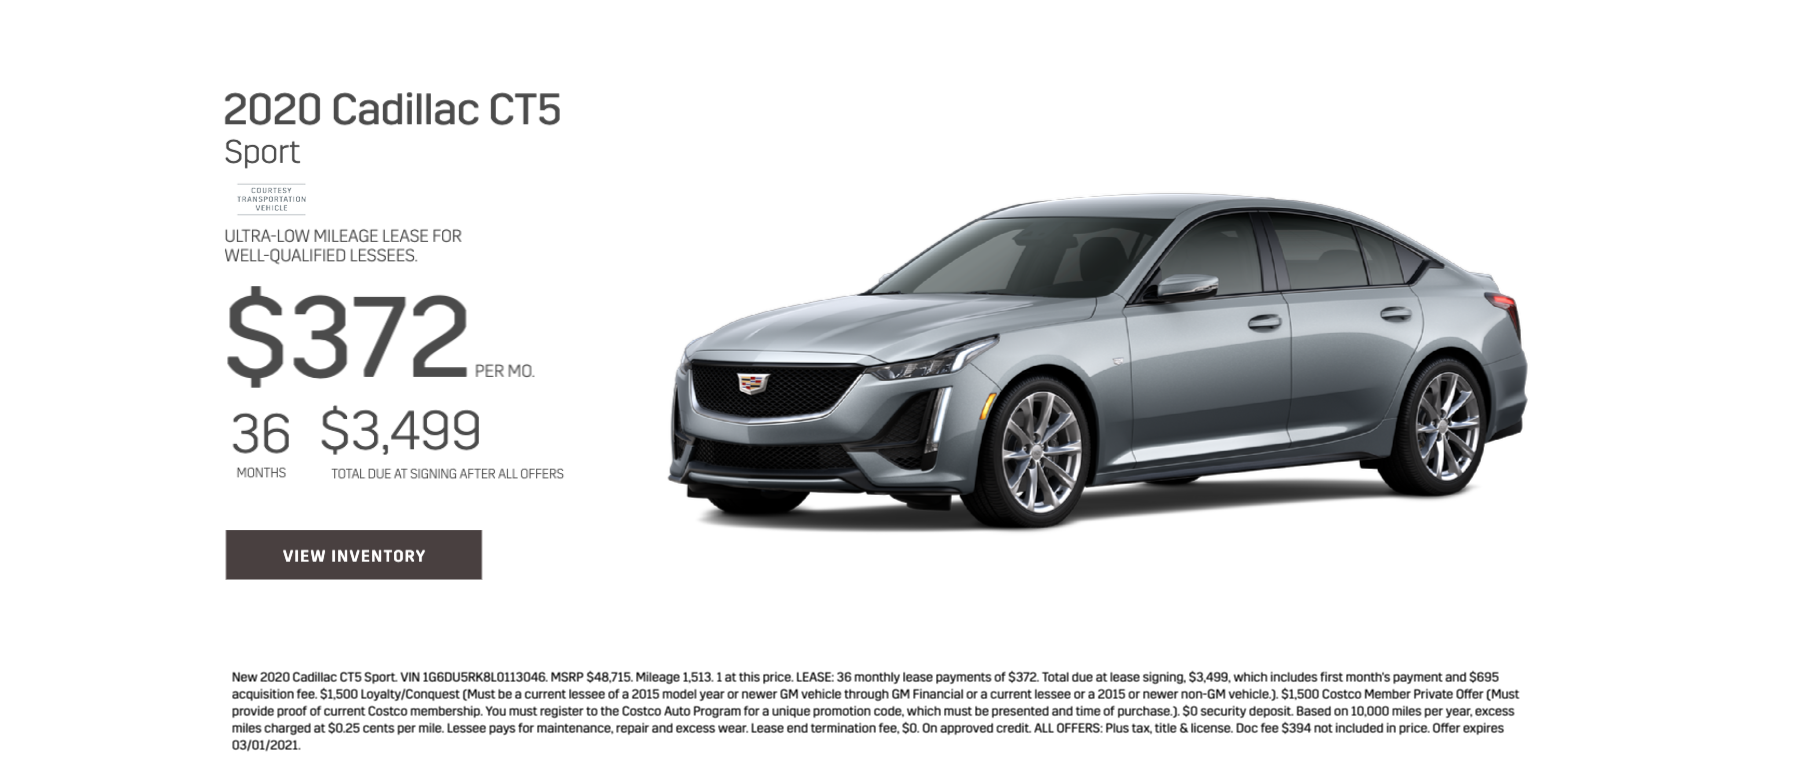 2020 Cadillac CT5 Sport Lease Officer for $372